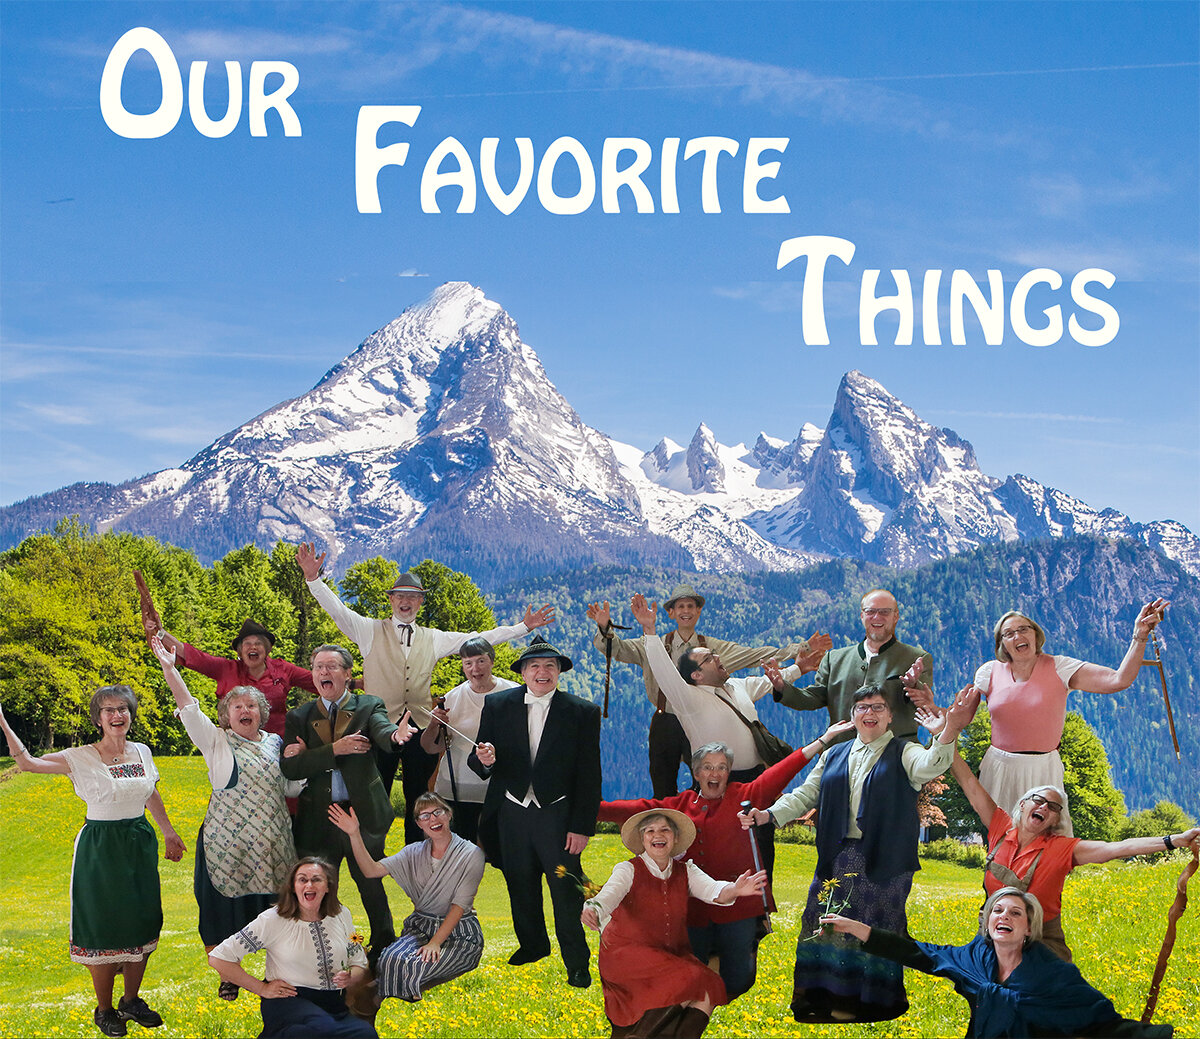 OUR FAVORITE THINGS - Saturday, November 16 at 7:30 pmSt. Mark's United Methodist ChurchJoin us for our first concert of the season! Featuring favorite repertoire from our first half-century, plus some new beloved works, we look forward to sharing our music with you.